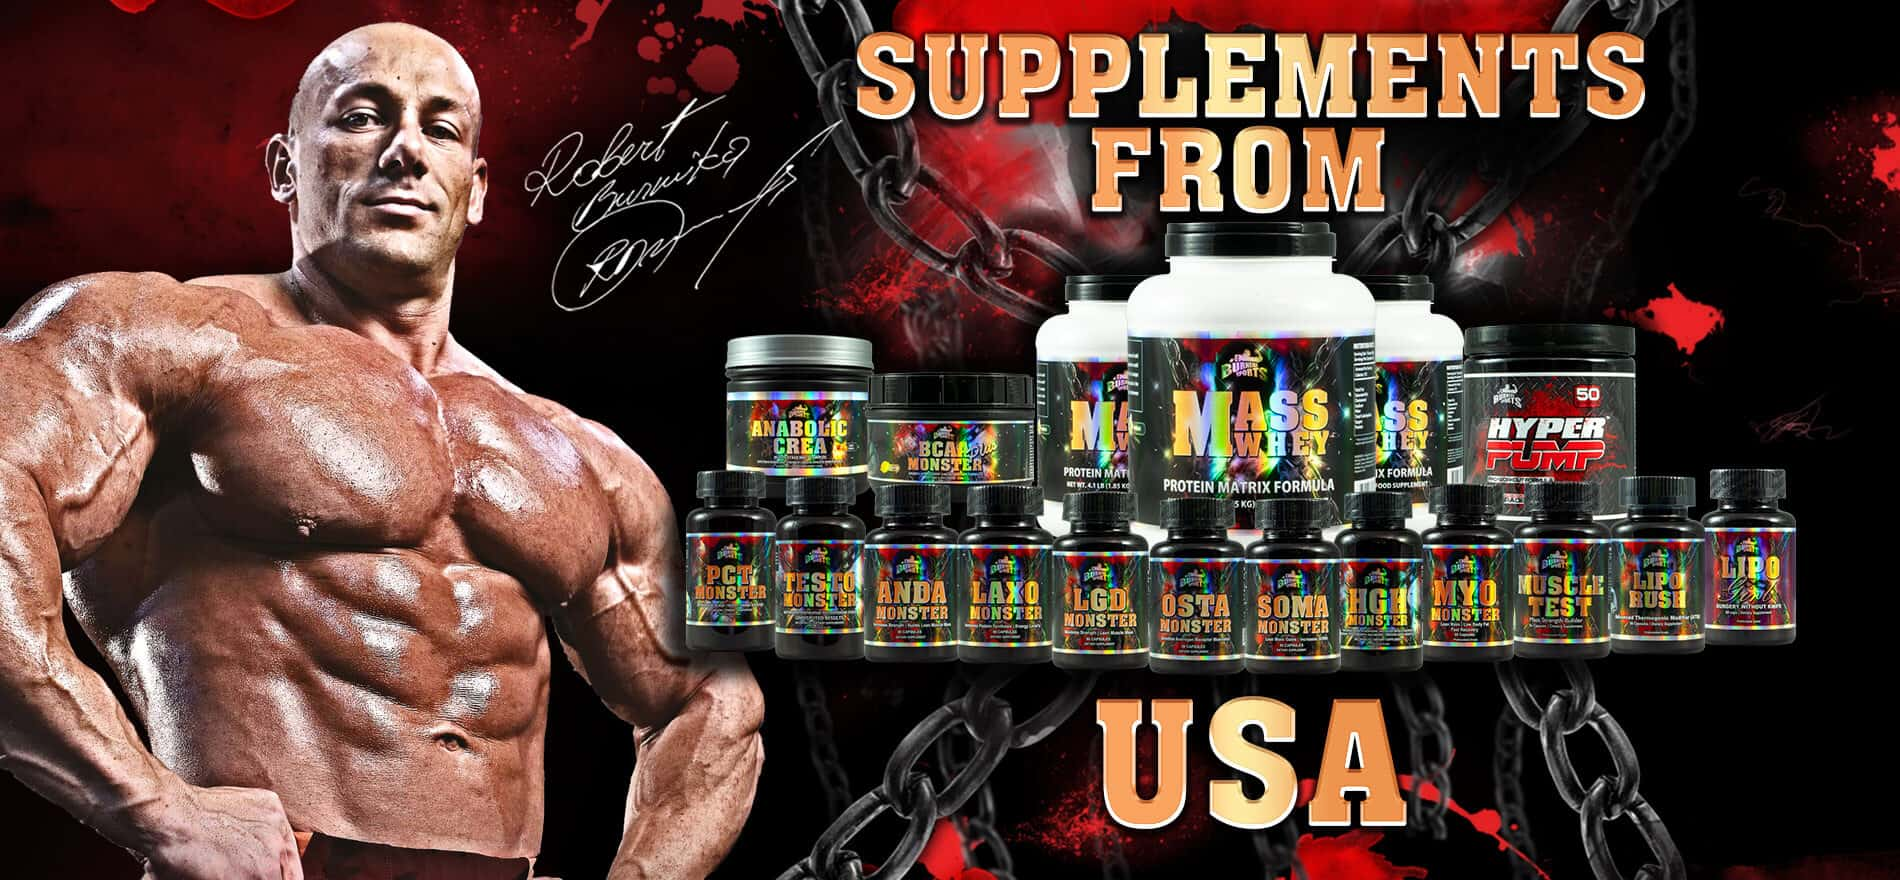 Supplements from USA